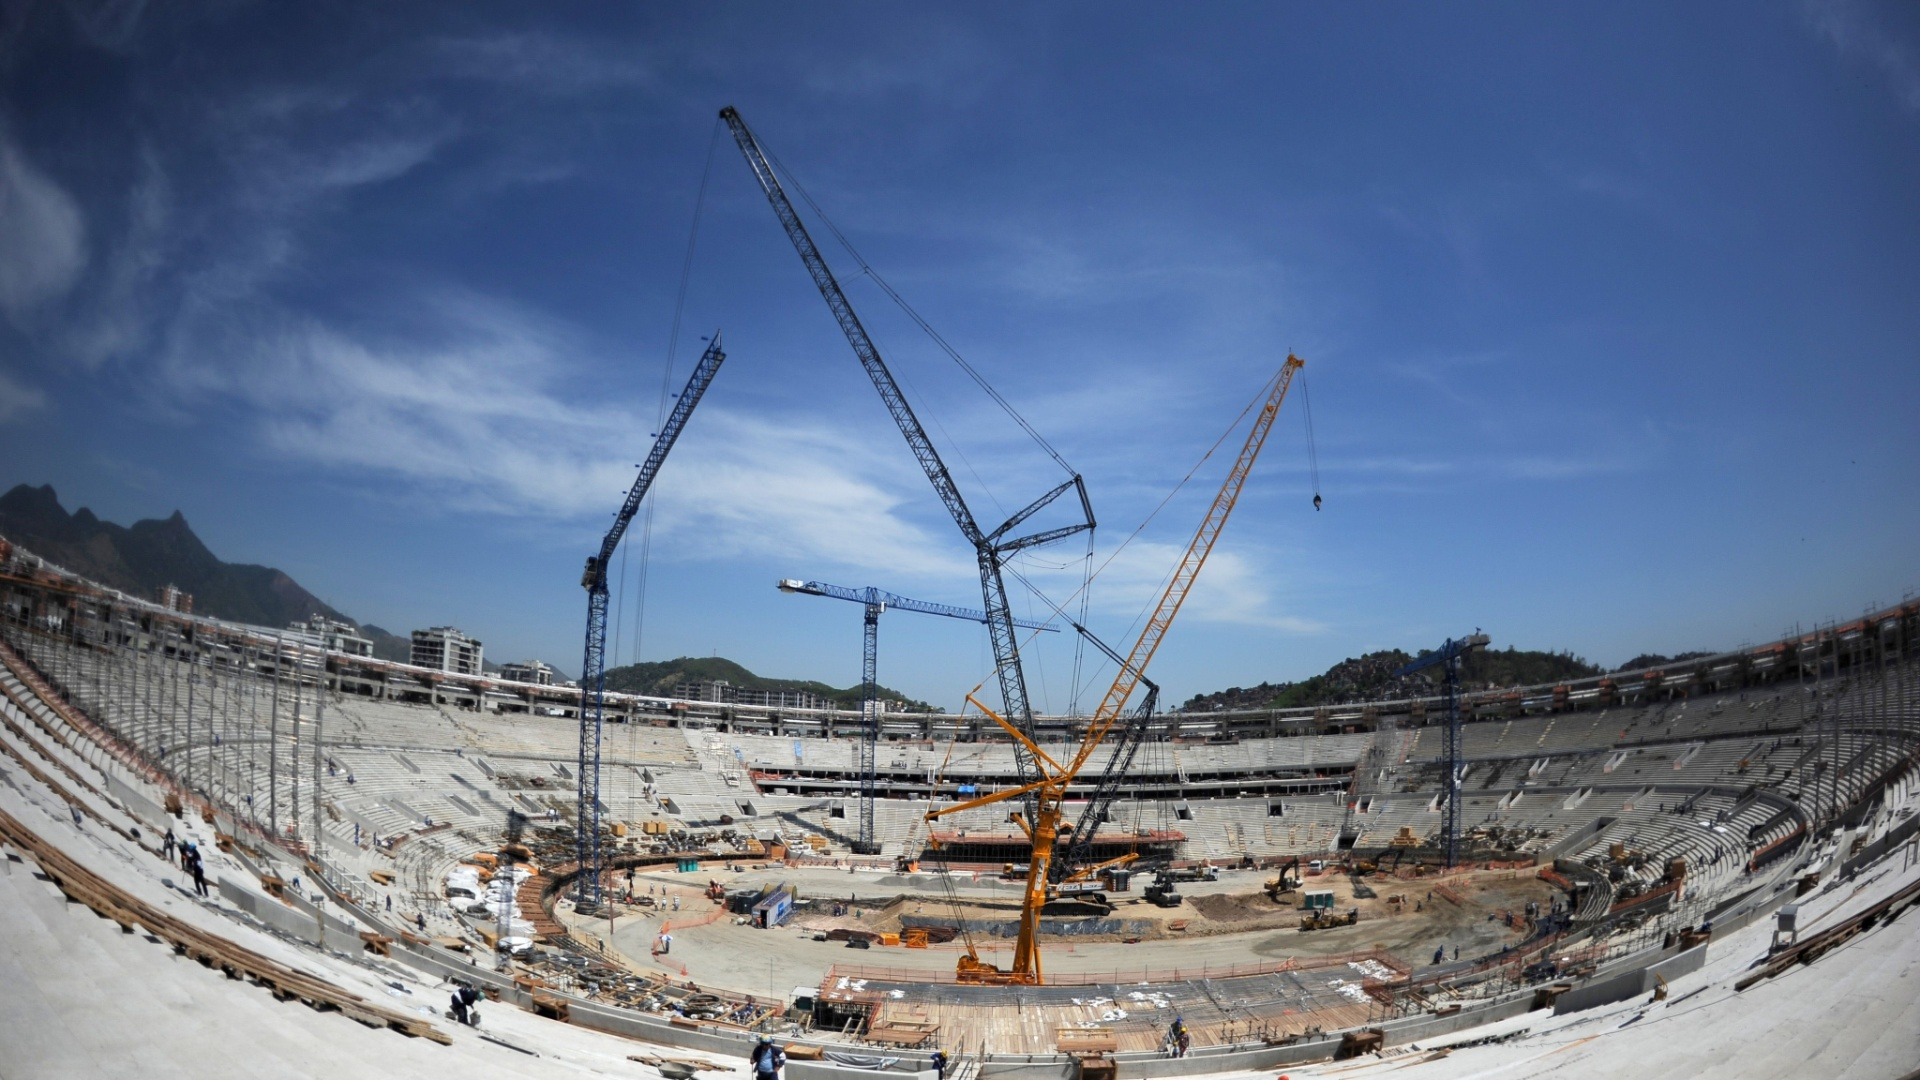 Imagem geral das obras de reforma do estdio do Maracan, palco da Copa do Mundo de 2014 no Rio de Janeiro